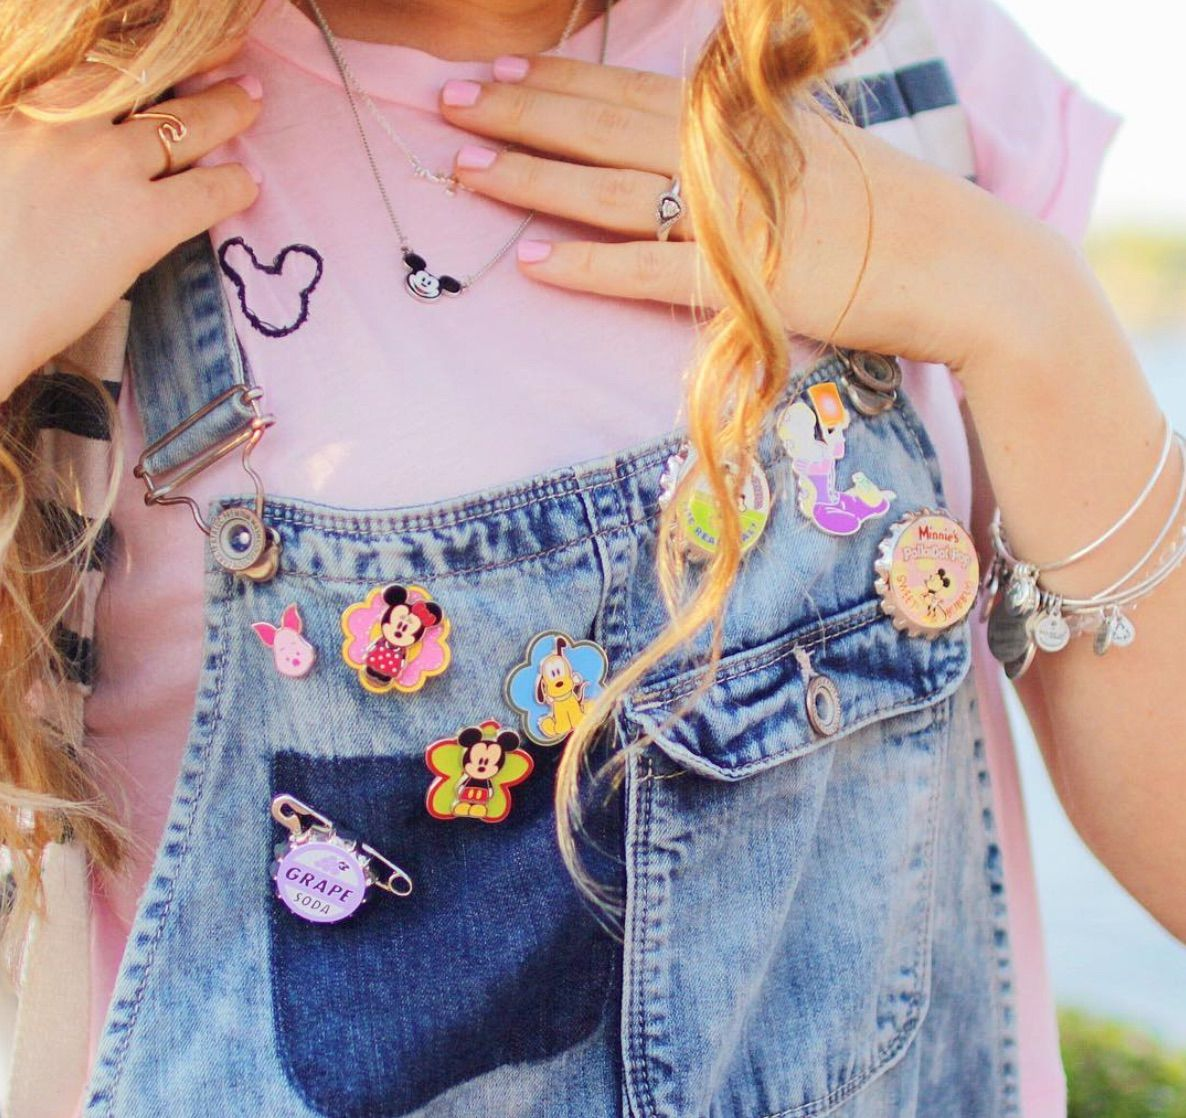 These Disney Fans Really Know How to #PINstagram #disneyfashion